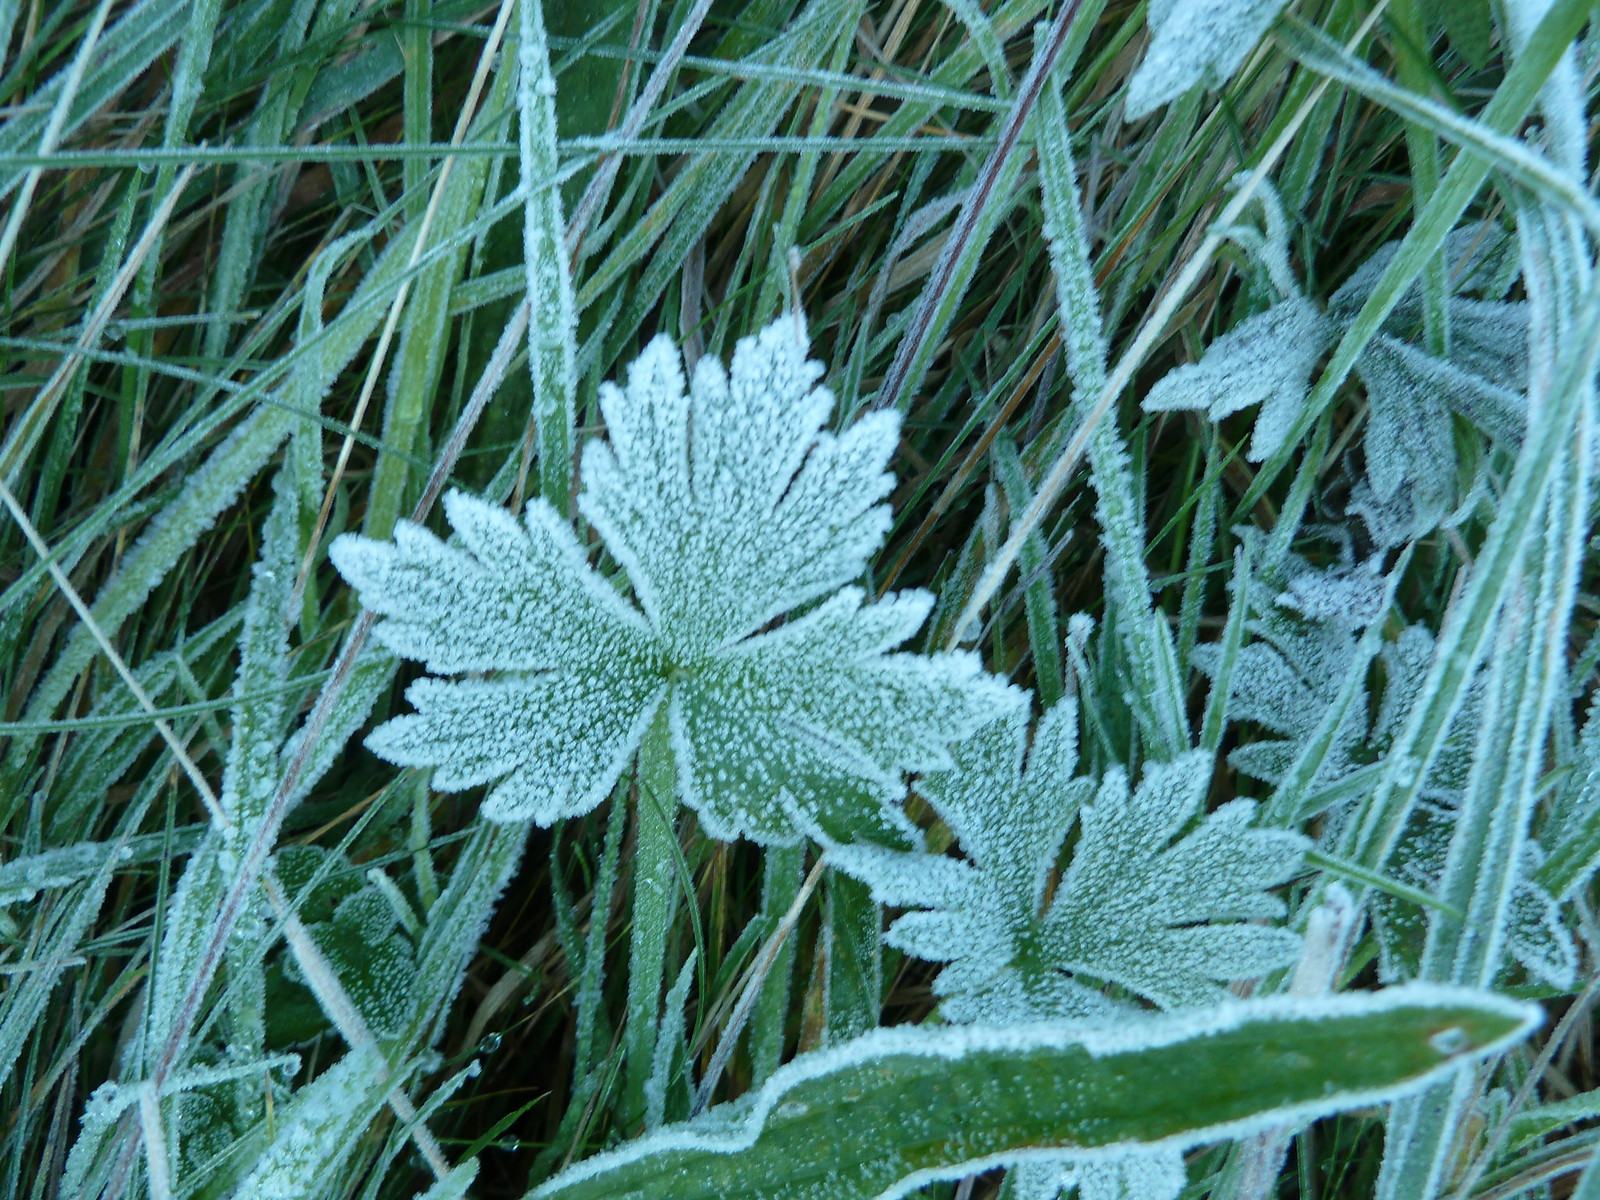 Frost 1 (Berwick to Birling Gap)